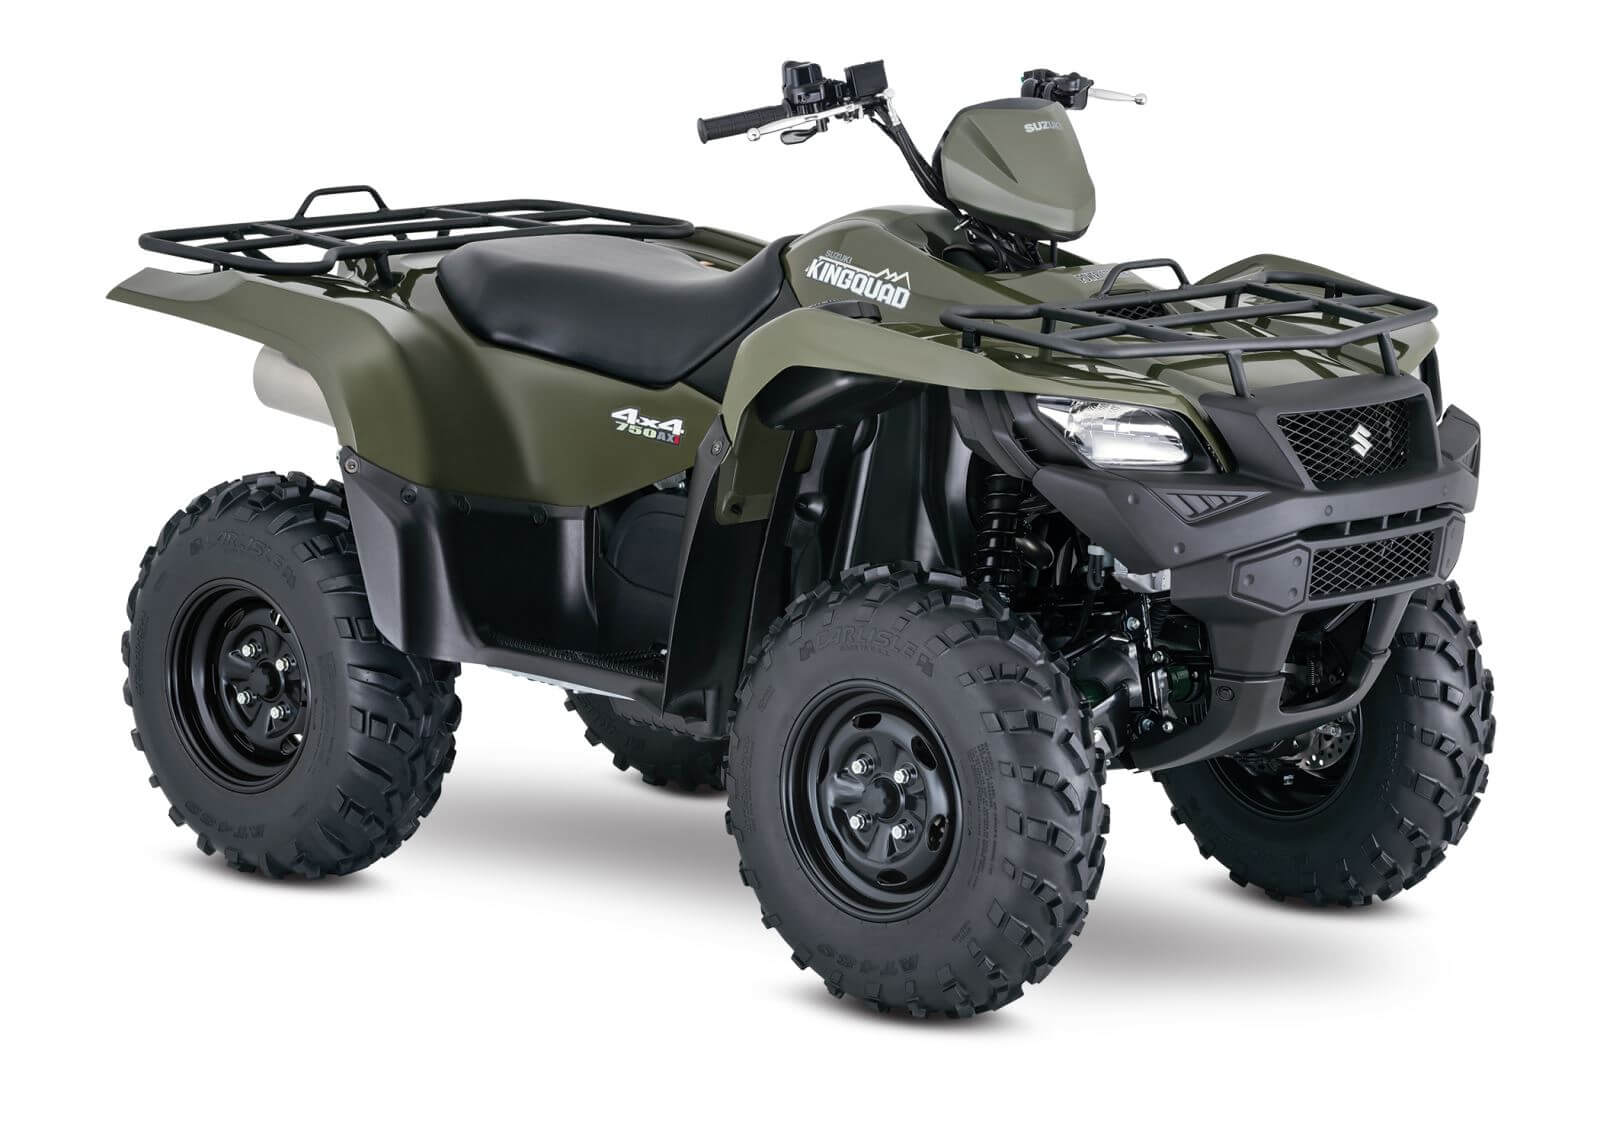 In 1983 Suzuki Introduced The World S First 4 Wheel Atv Today Atvs Are Everywhere From Most Remote Areas To Everyday Tasks